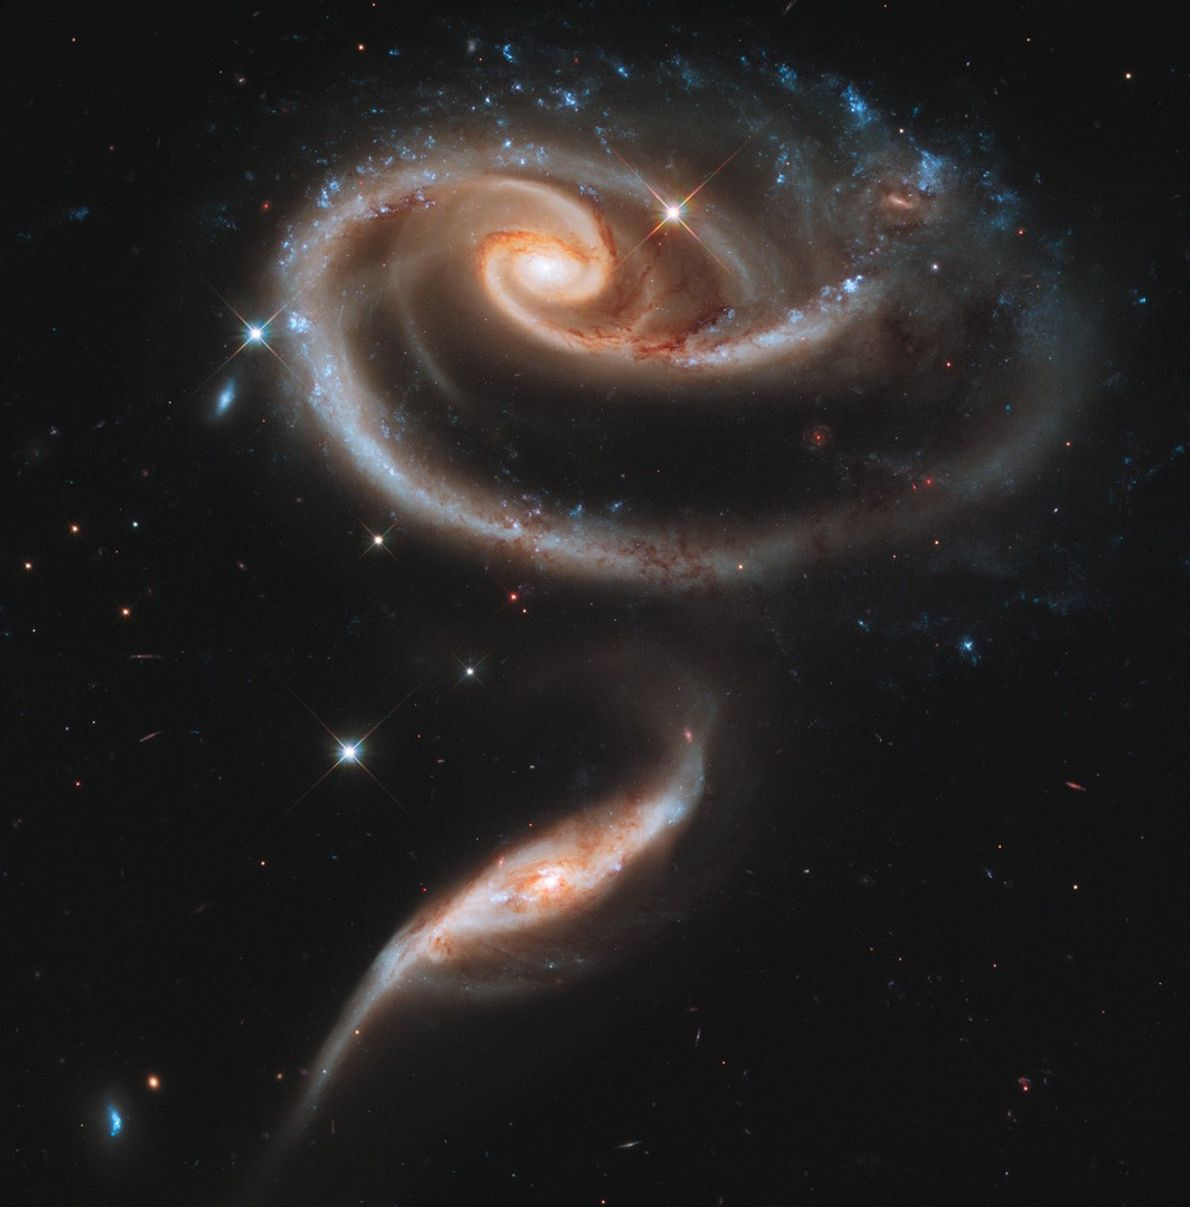 Two spiral galaxies, collectively known as Arp 273, prepare to merge 300 million light-years away.